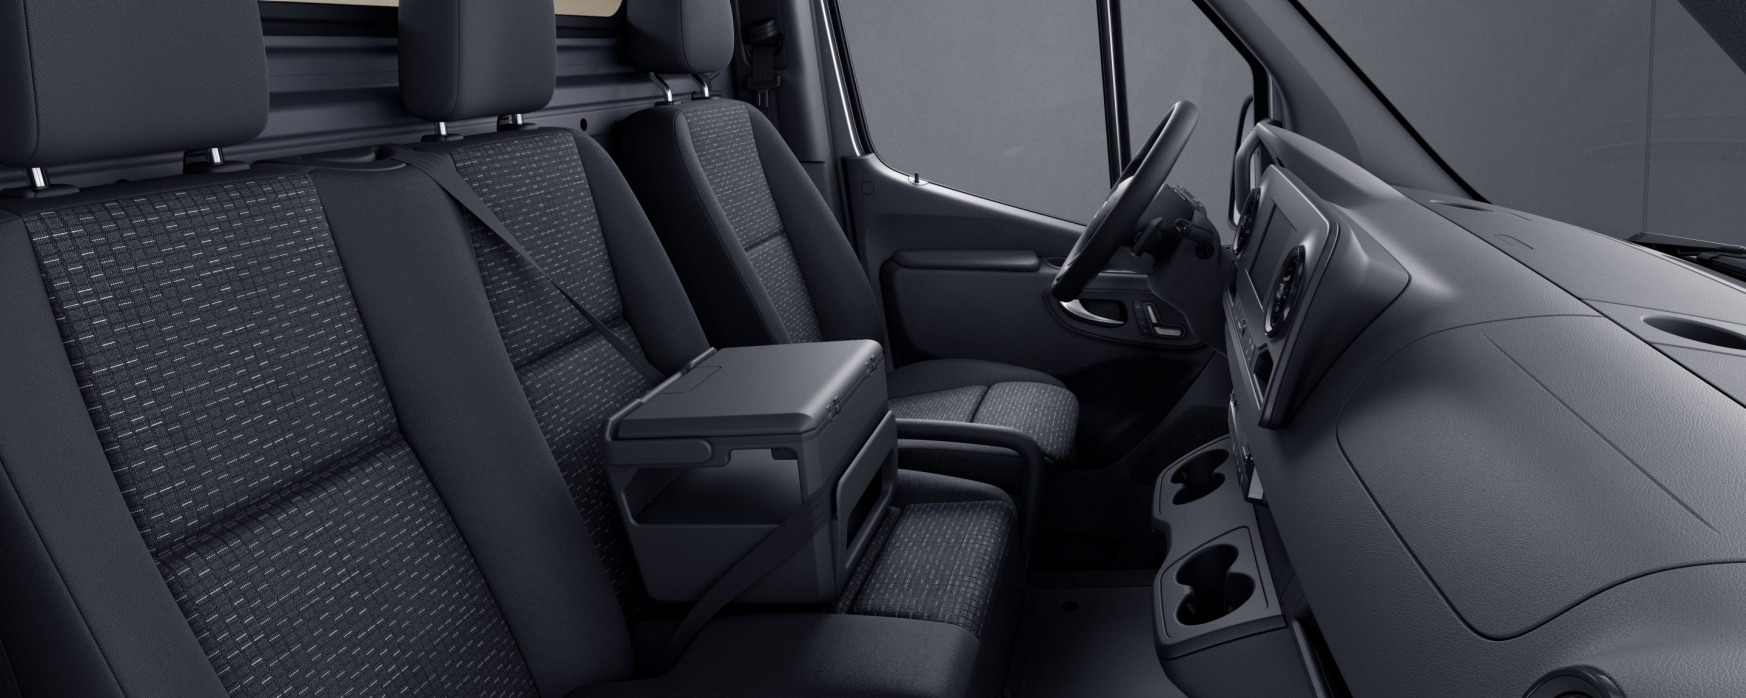 Sprinter Cab Chassis, caluma black fabric